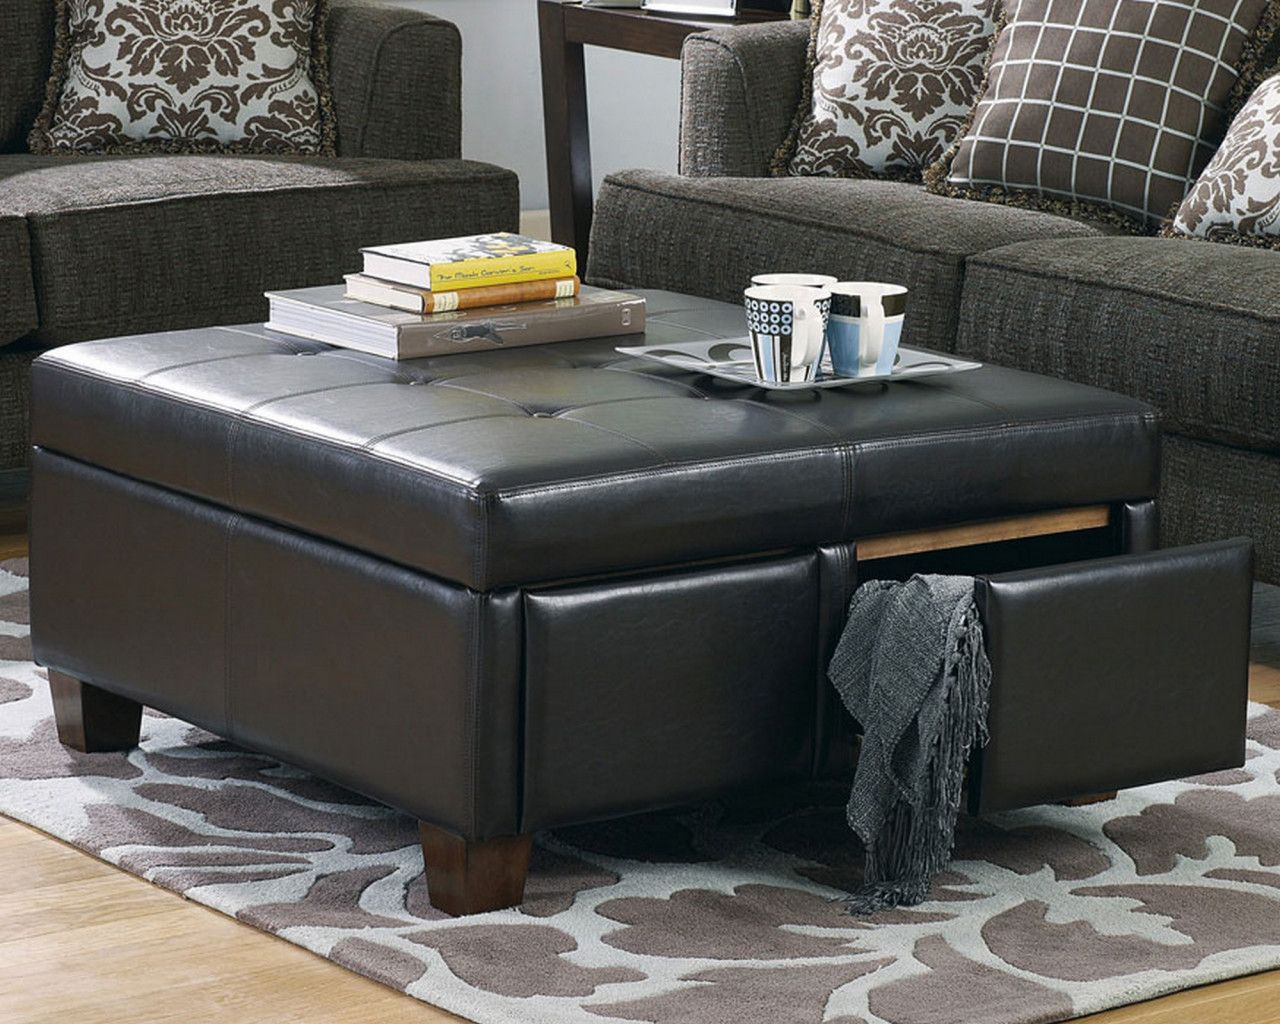 201 Inspirational Oversized Ottoman Coffee Table 2018 Storage Ottoman Coffee Table Upholstered Ottoman Coffee Table Leather Ottoman Coffee Table